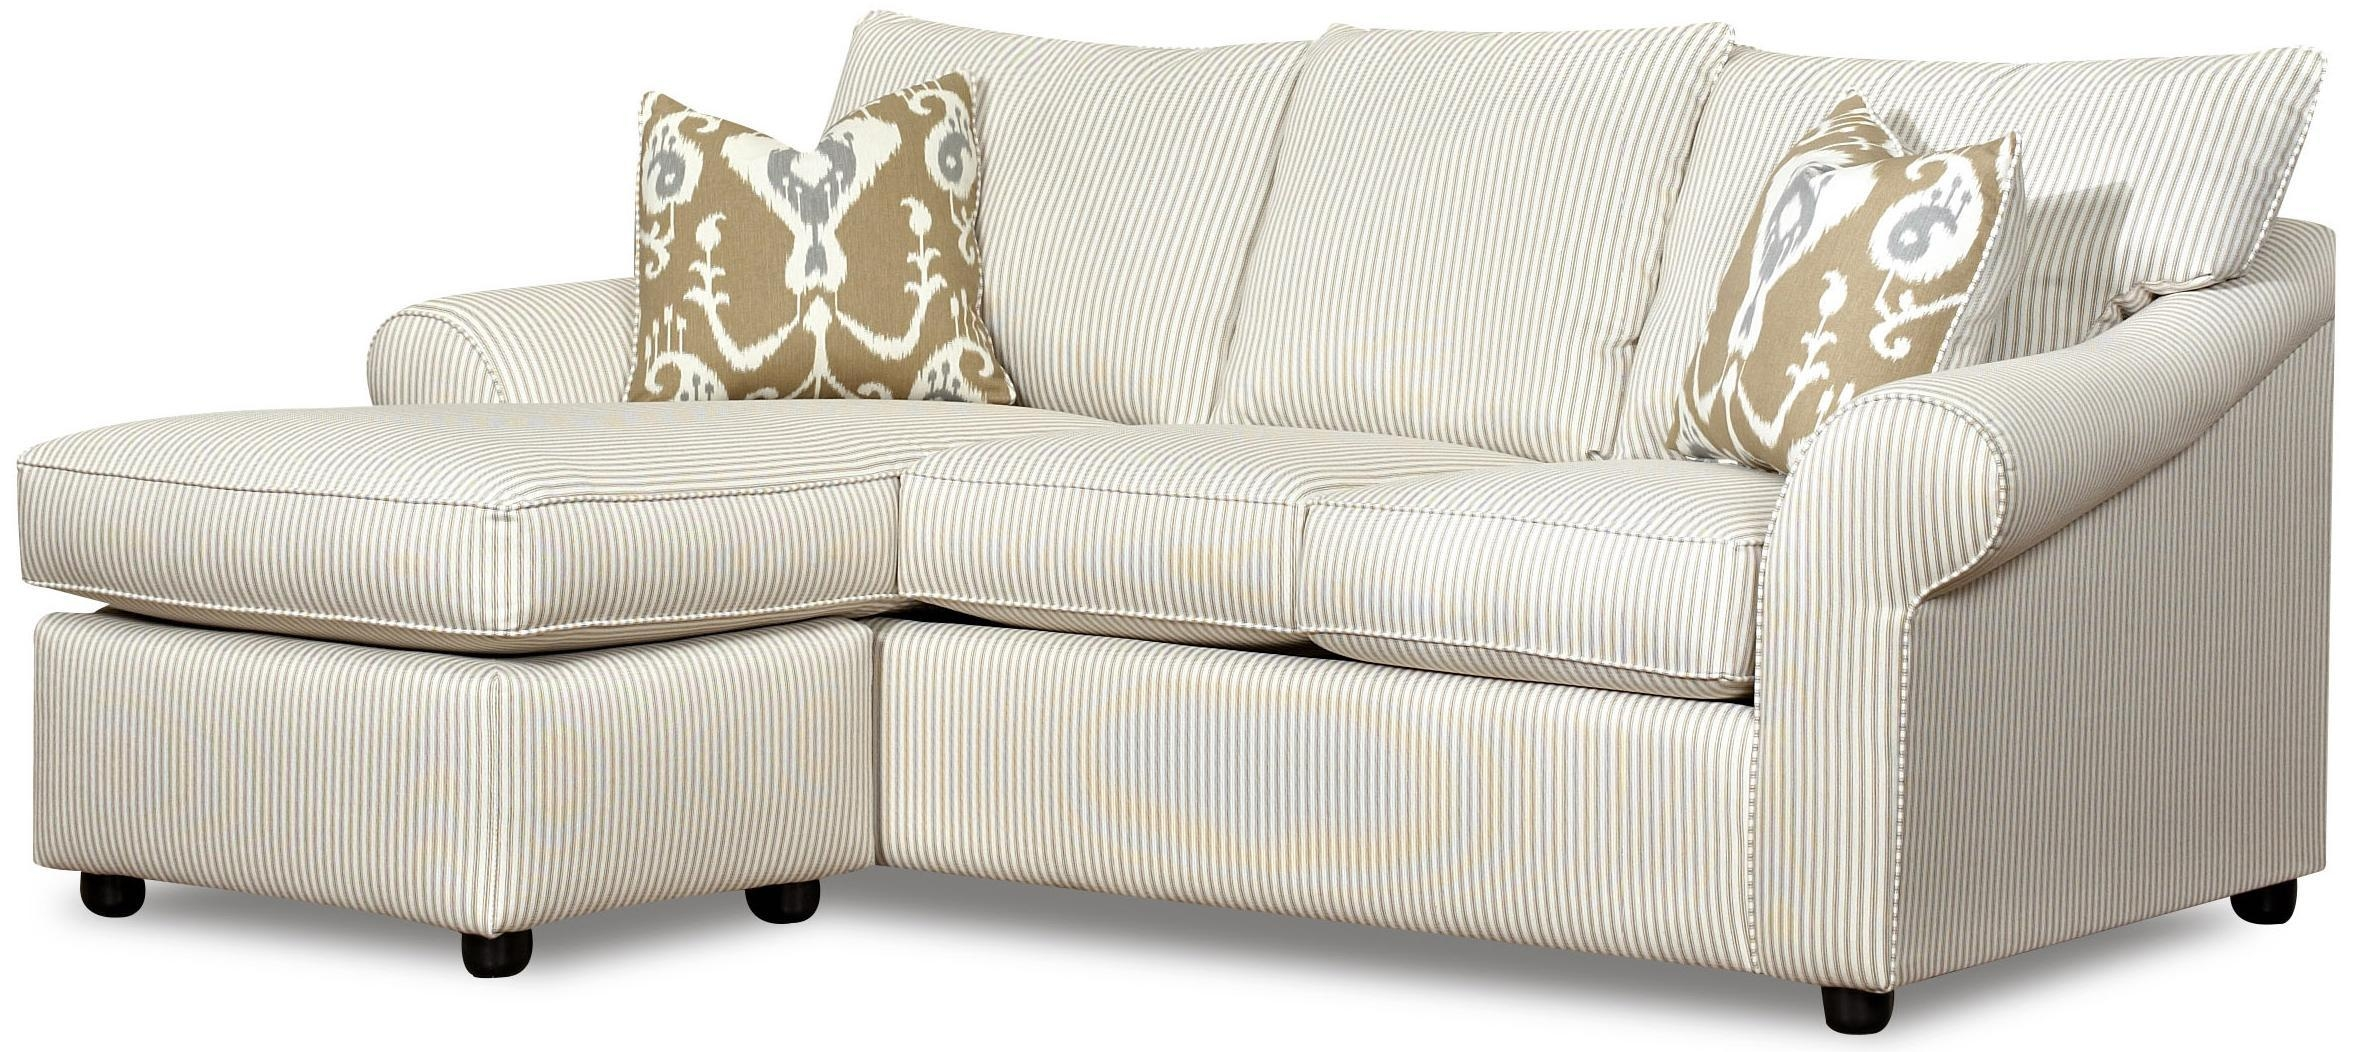 20 top sofas with chaise longue sofa ideas for Chaise longue sofa